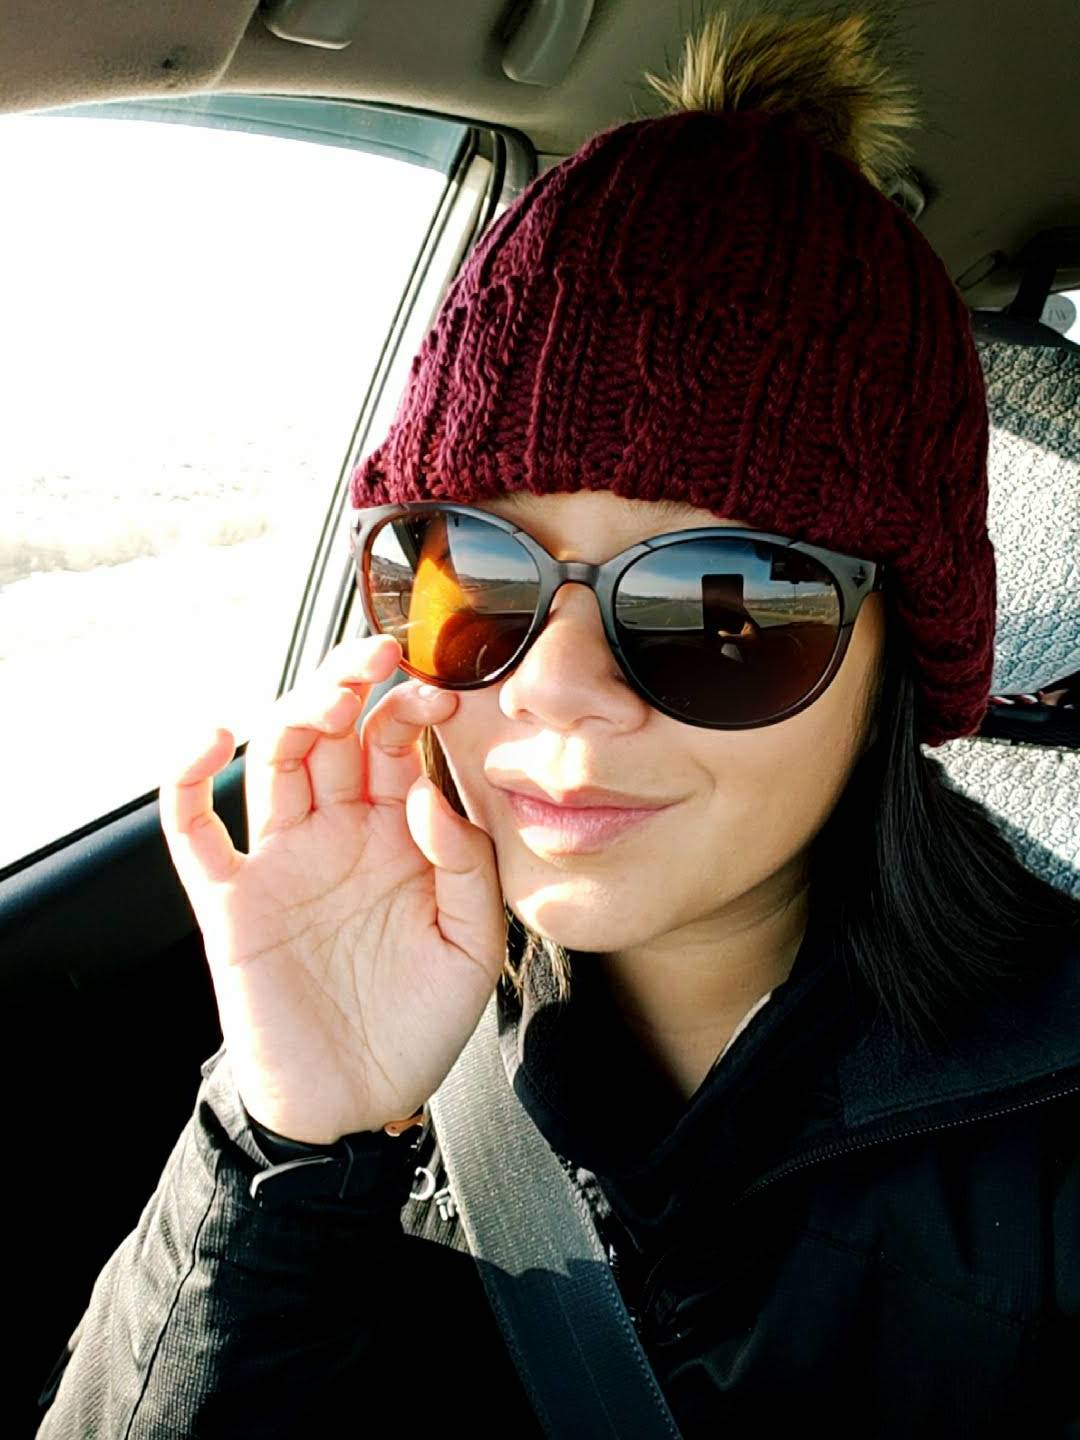 Wyoming_openroad_carselfie